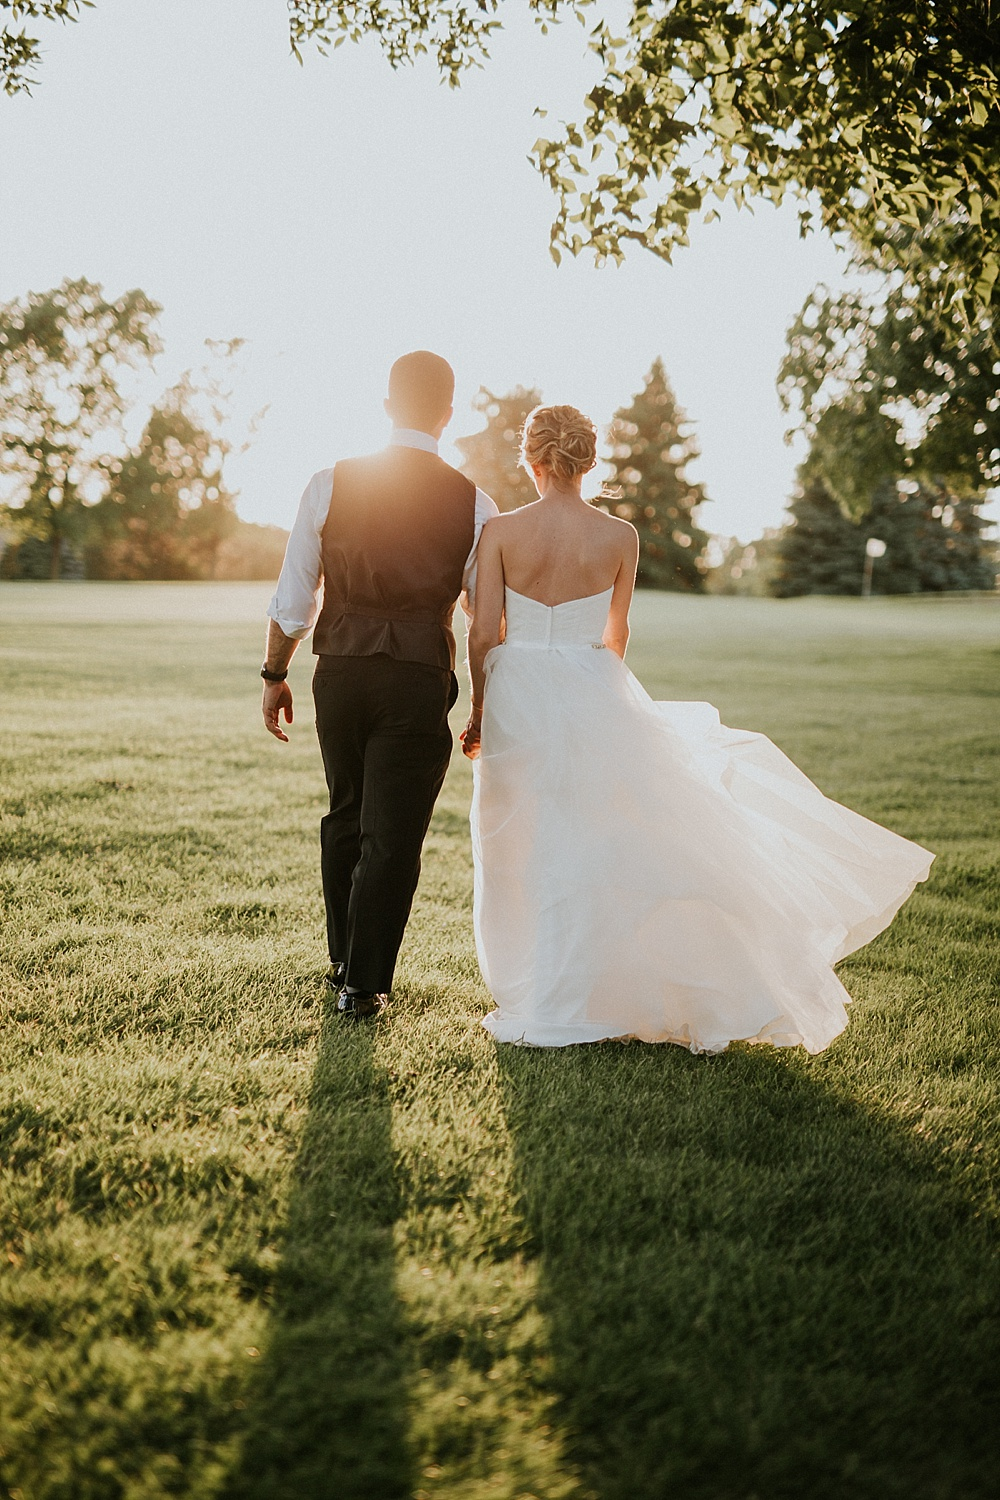 Scott+Michelle-Pewaukee-Western-Lakes-Golf-Course-Wedding_Liller-Photo_0062.jpg